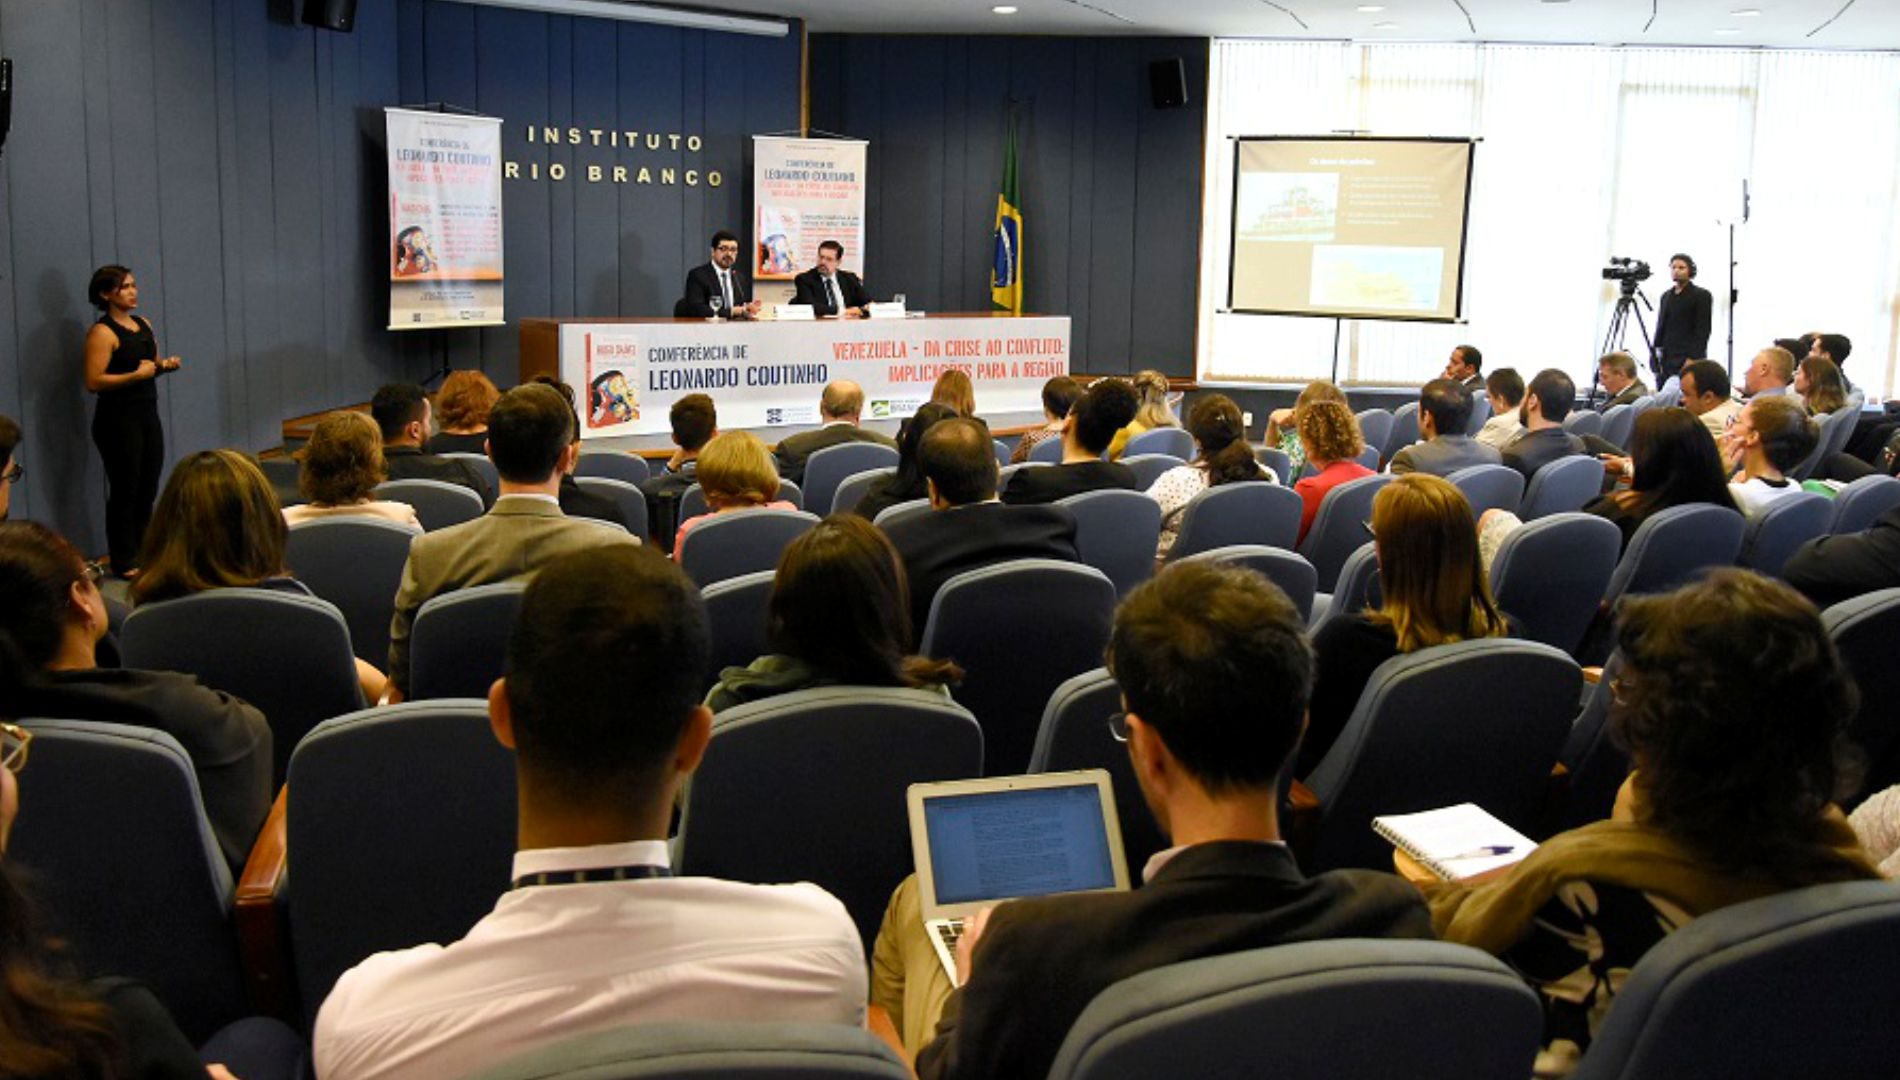 FUNAG holds conference on Venezuela – from crisis to conflict: implications for the region